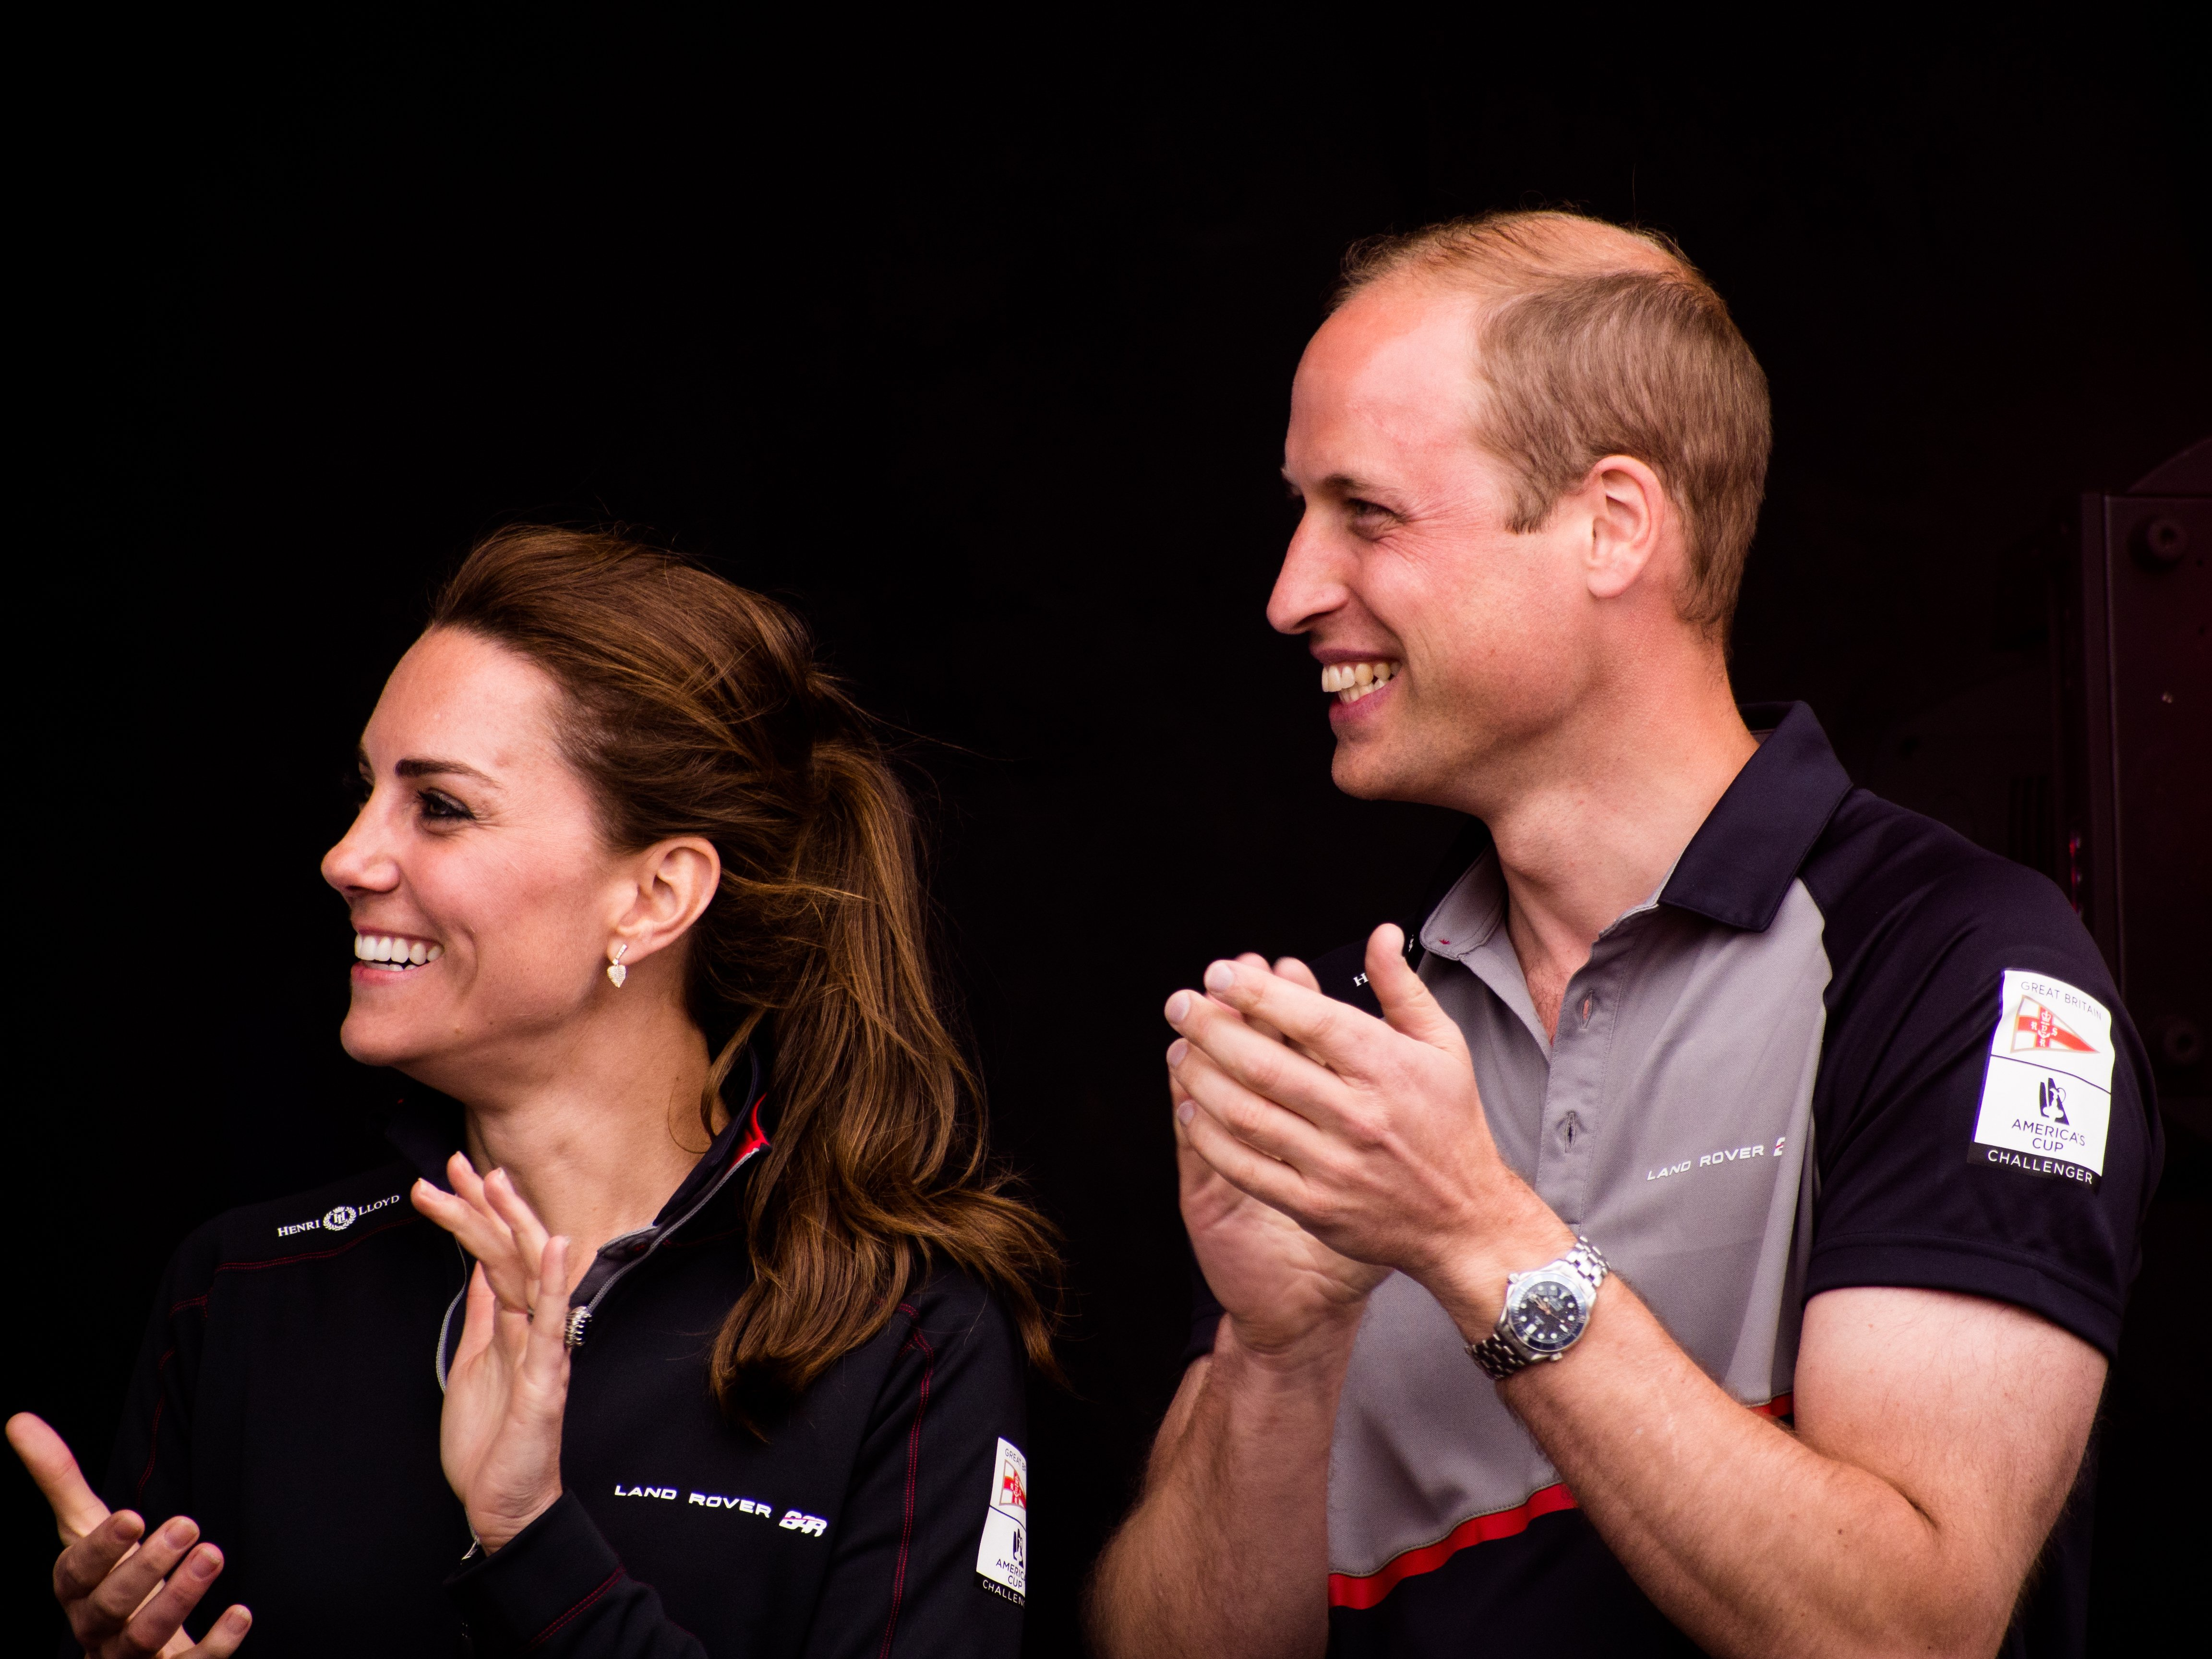 Prince William and Kate Middleton applaud the arrival onshore of the sailors taking part in the Americas Cup World Series on July 24, 2016 in Portsmouth | Photo: Shutterstock